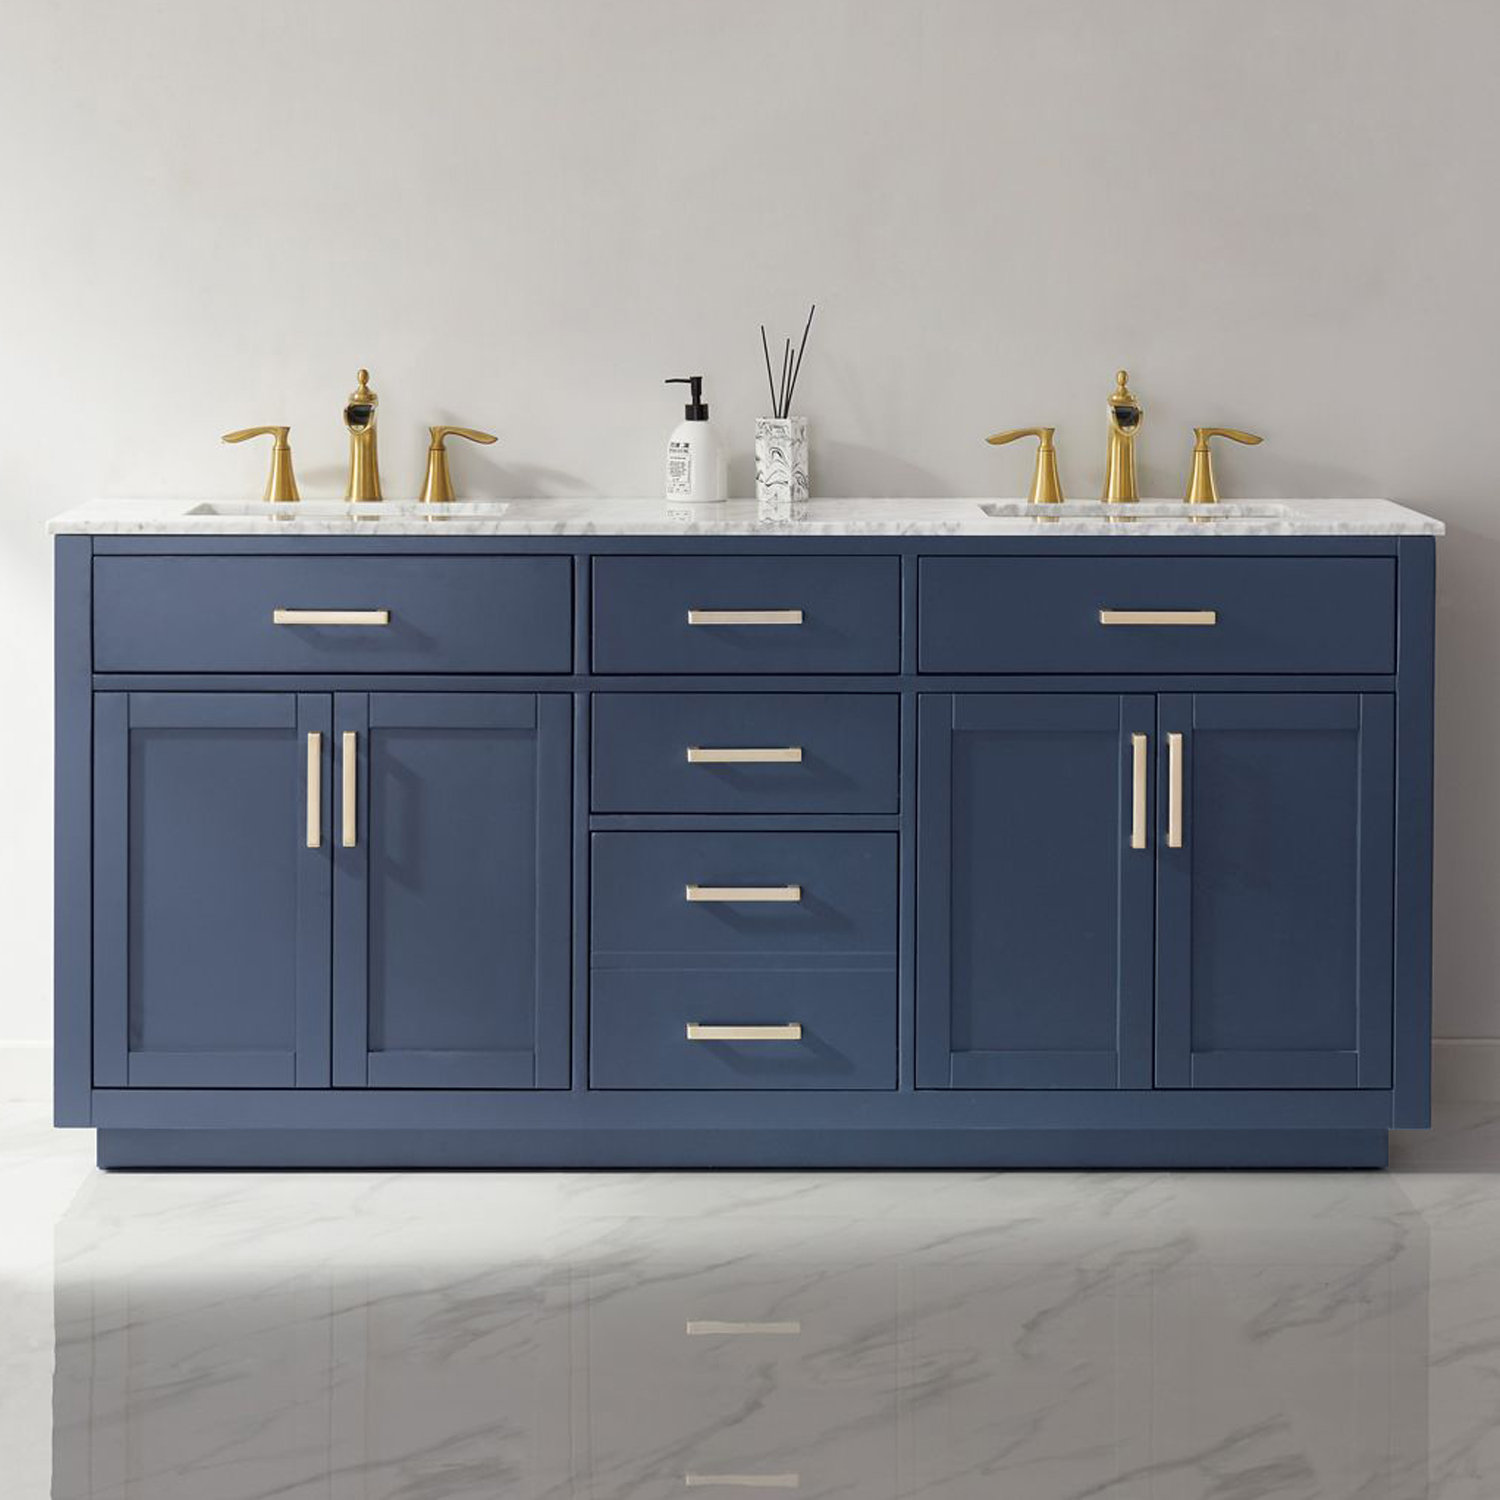 """Issac Edwards Collection 72"""" Double Bathroom Vanity Set in RoyalBlue and Carrara White Marble Countertop without Mirror"""